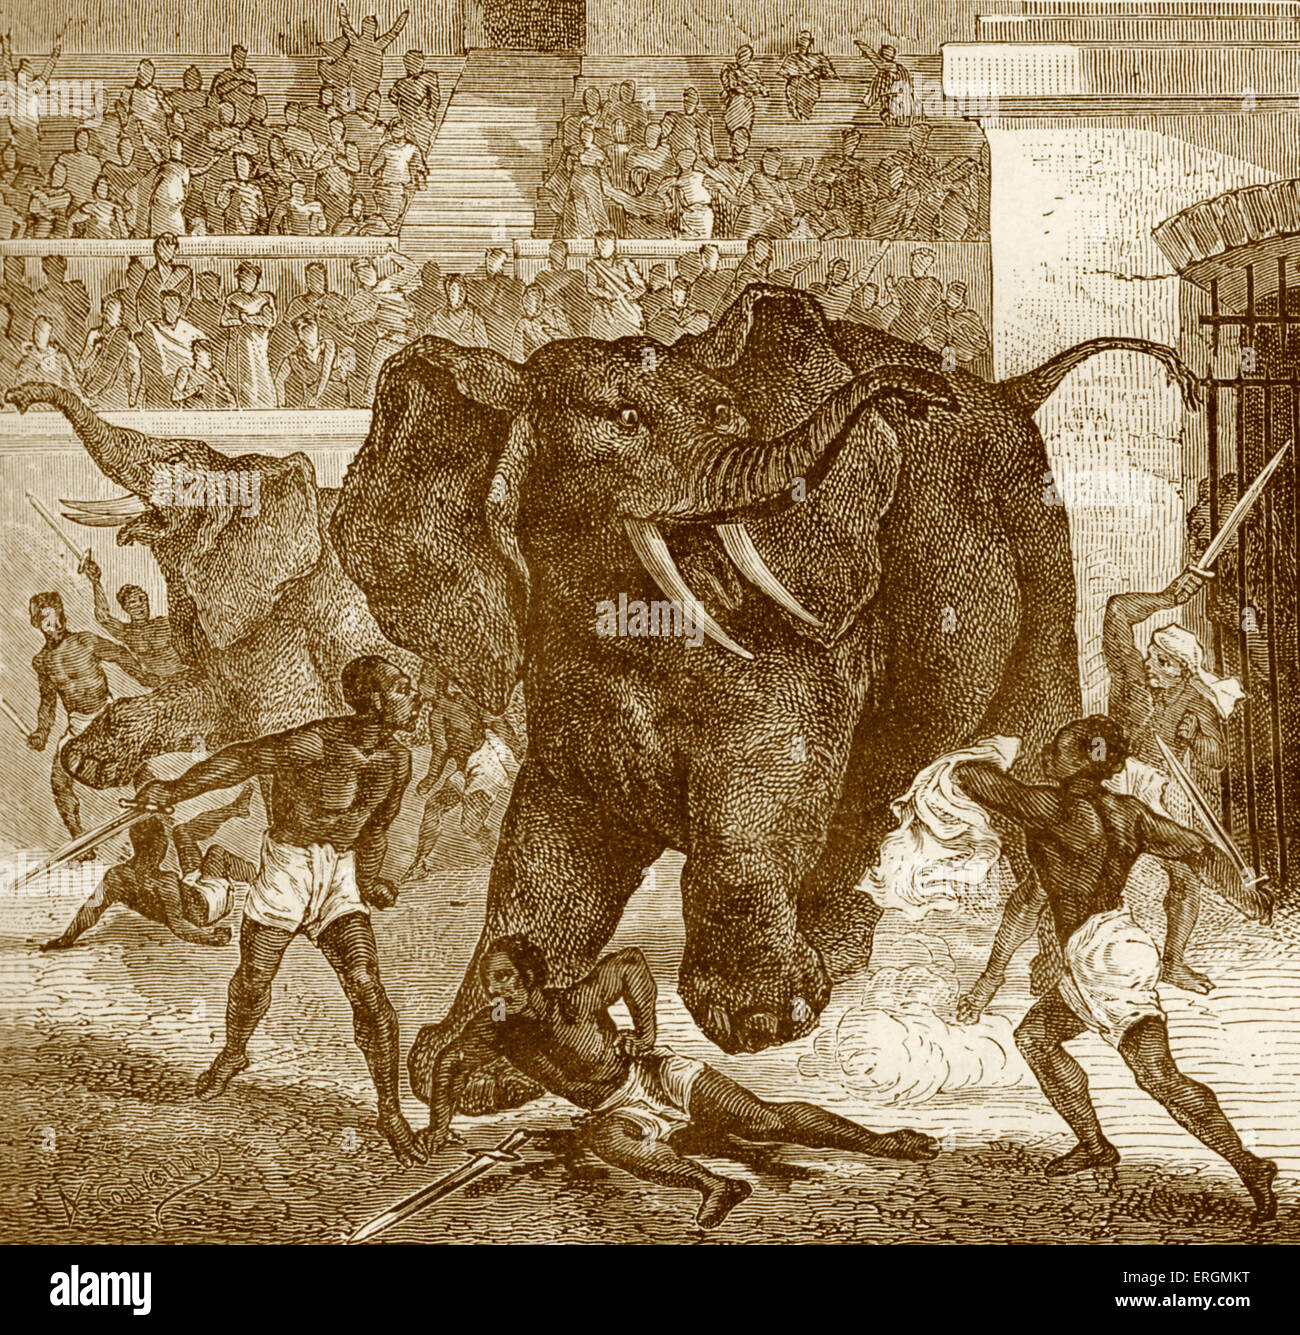 Games at Circus Maximus in Ancient Rome. Black prisoners/captives fighting elephants. Chariot racing stadium. - Stock Image